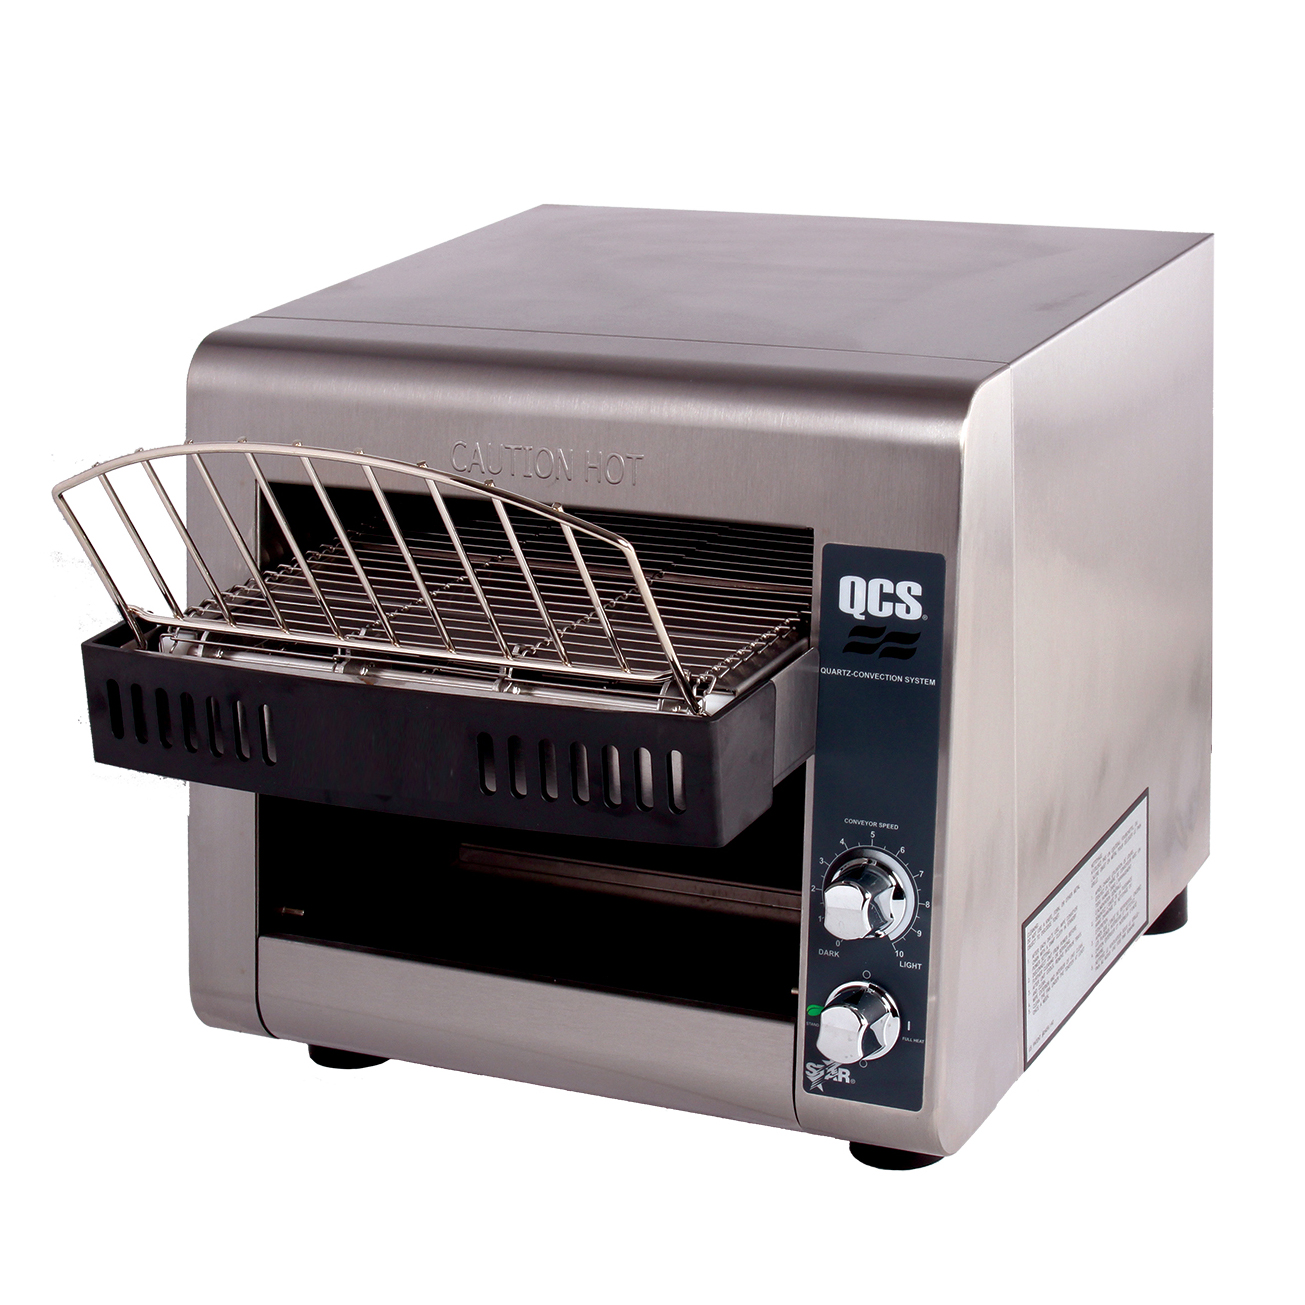 Star QCS1-350 toaster, conveyor type